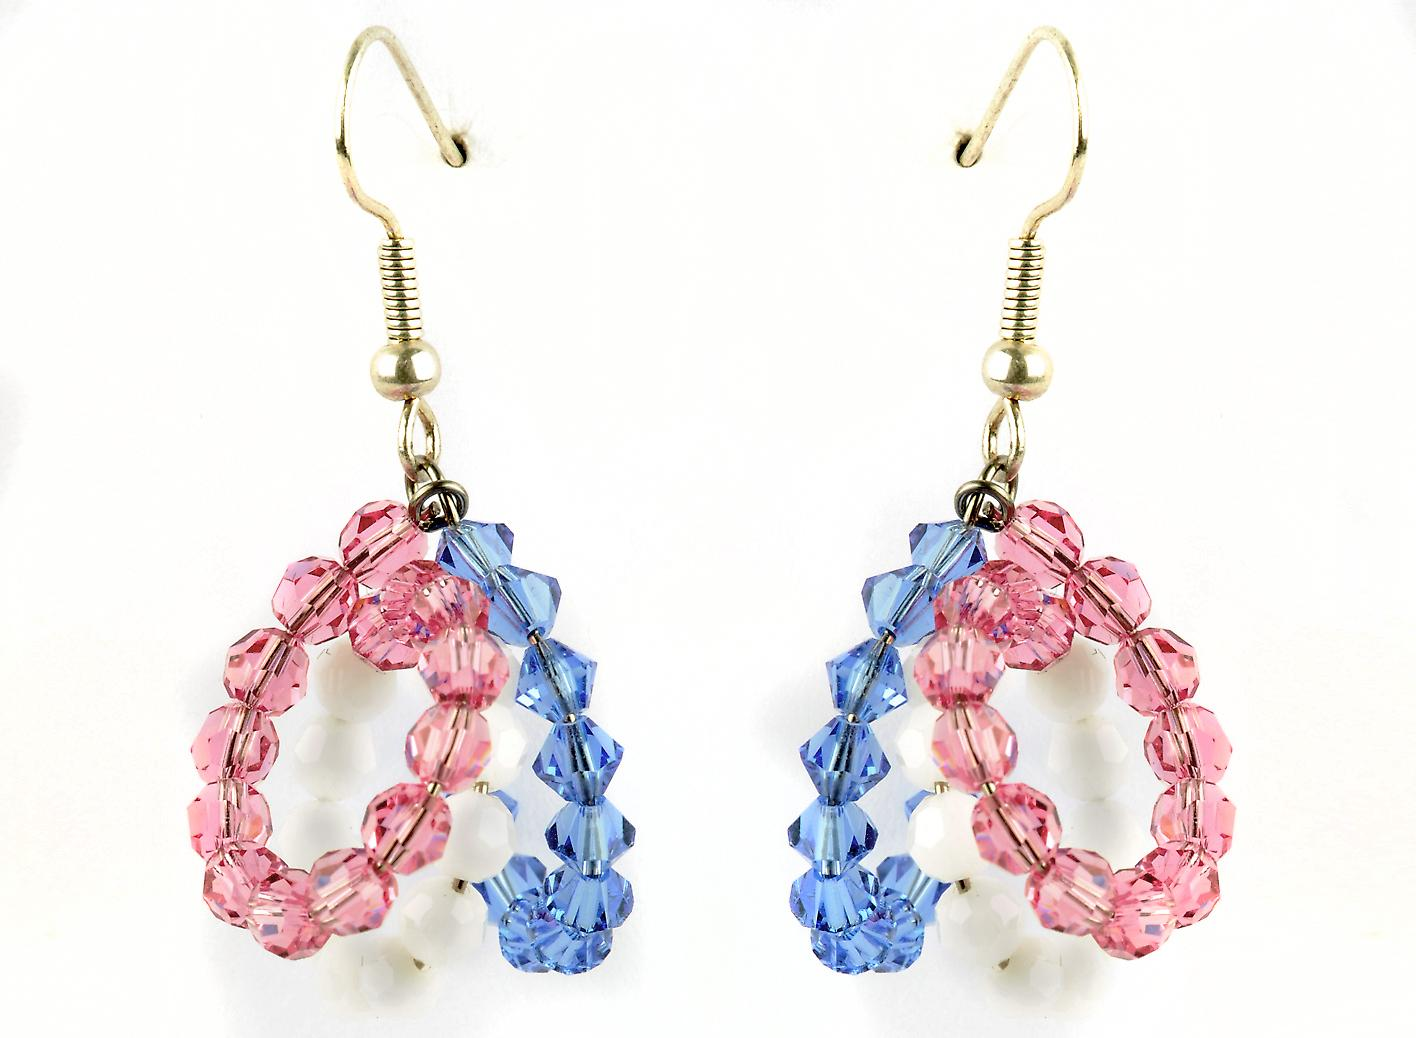 Waooh - jewelry - WJ0771 - Swarovski Pink & White - Mount Silver Blue Crystal earrings